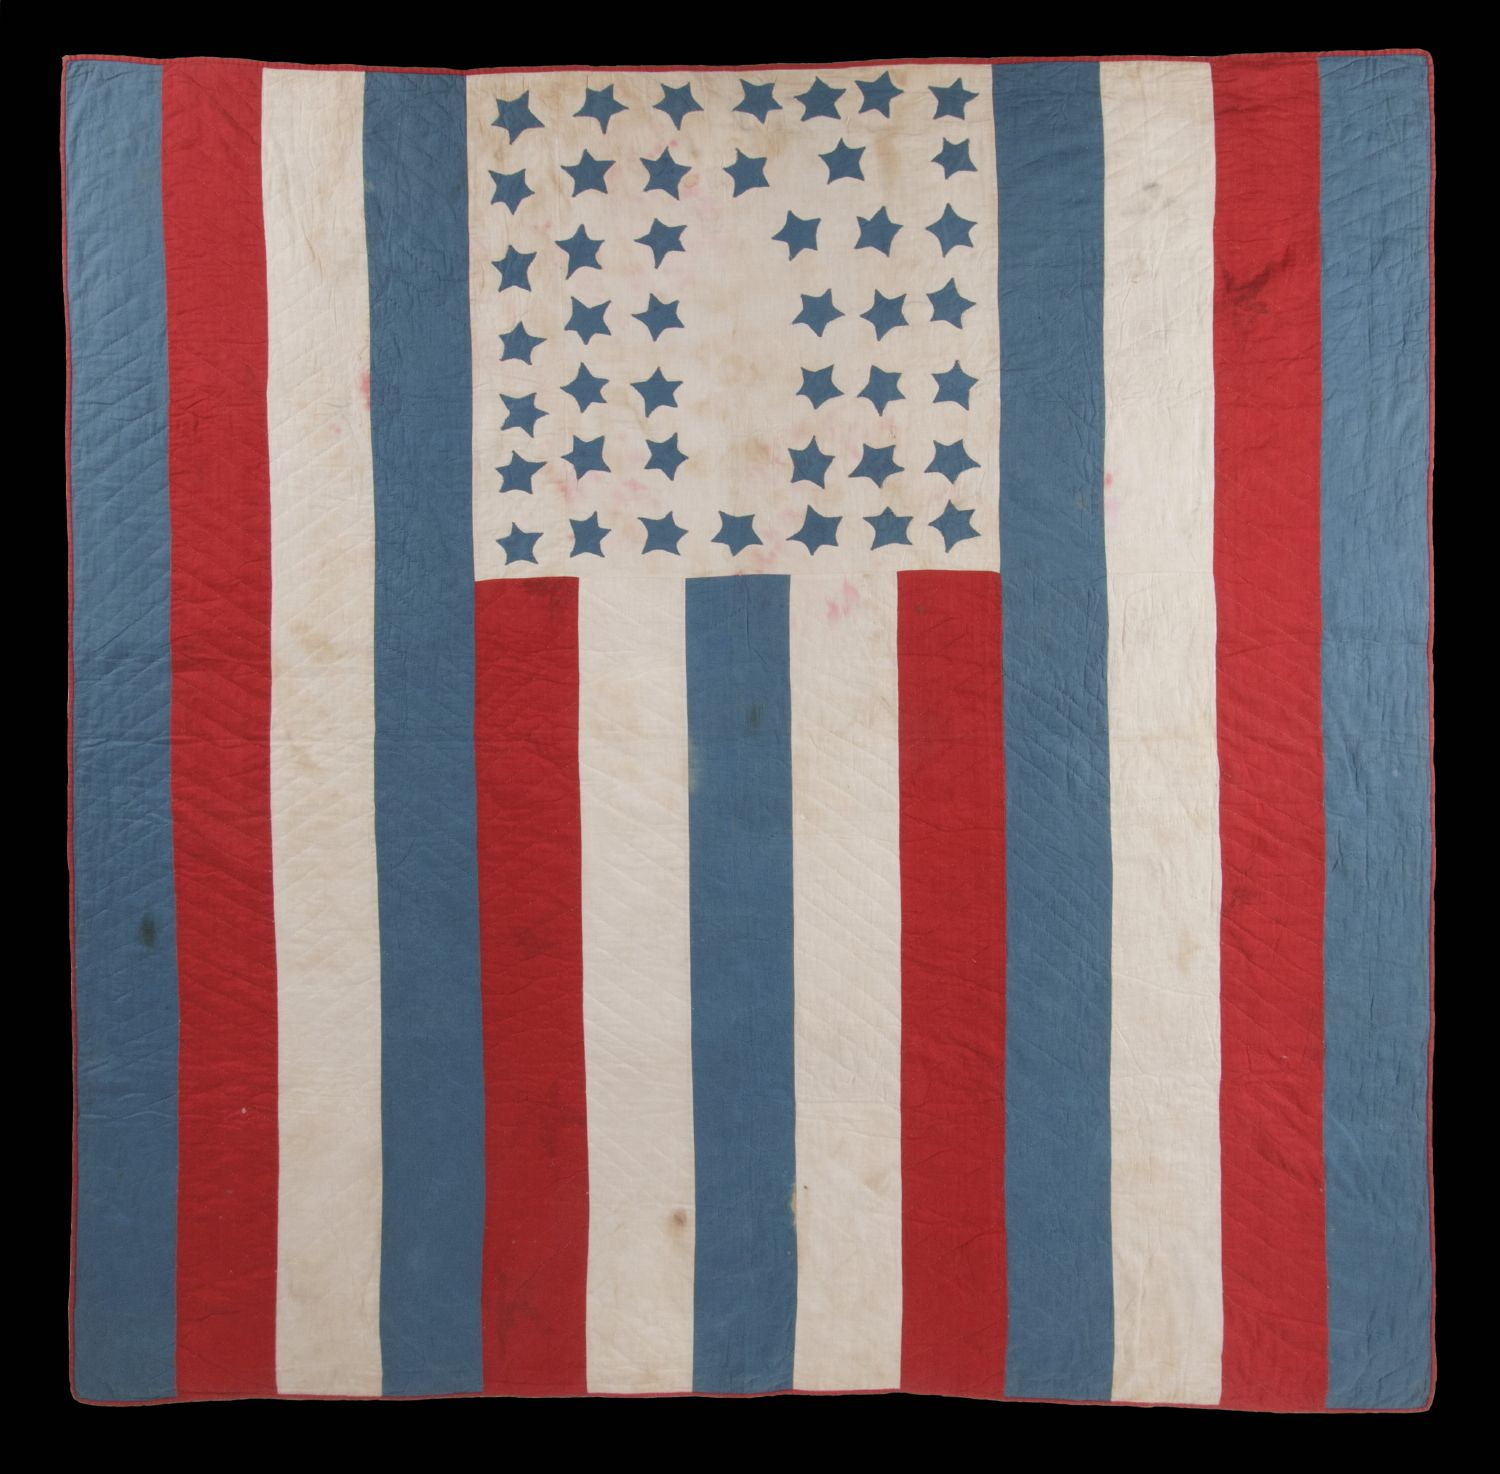 American Patriotic Flag Quilt With 44 Blue Stars Set Upon A White Ground In The Top Center Of 13 Red White And Blue Stripe Flag Quilt Quilts Patriotic Quilts